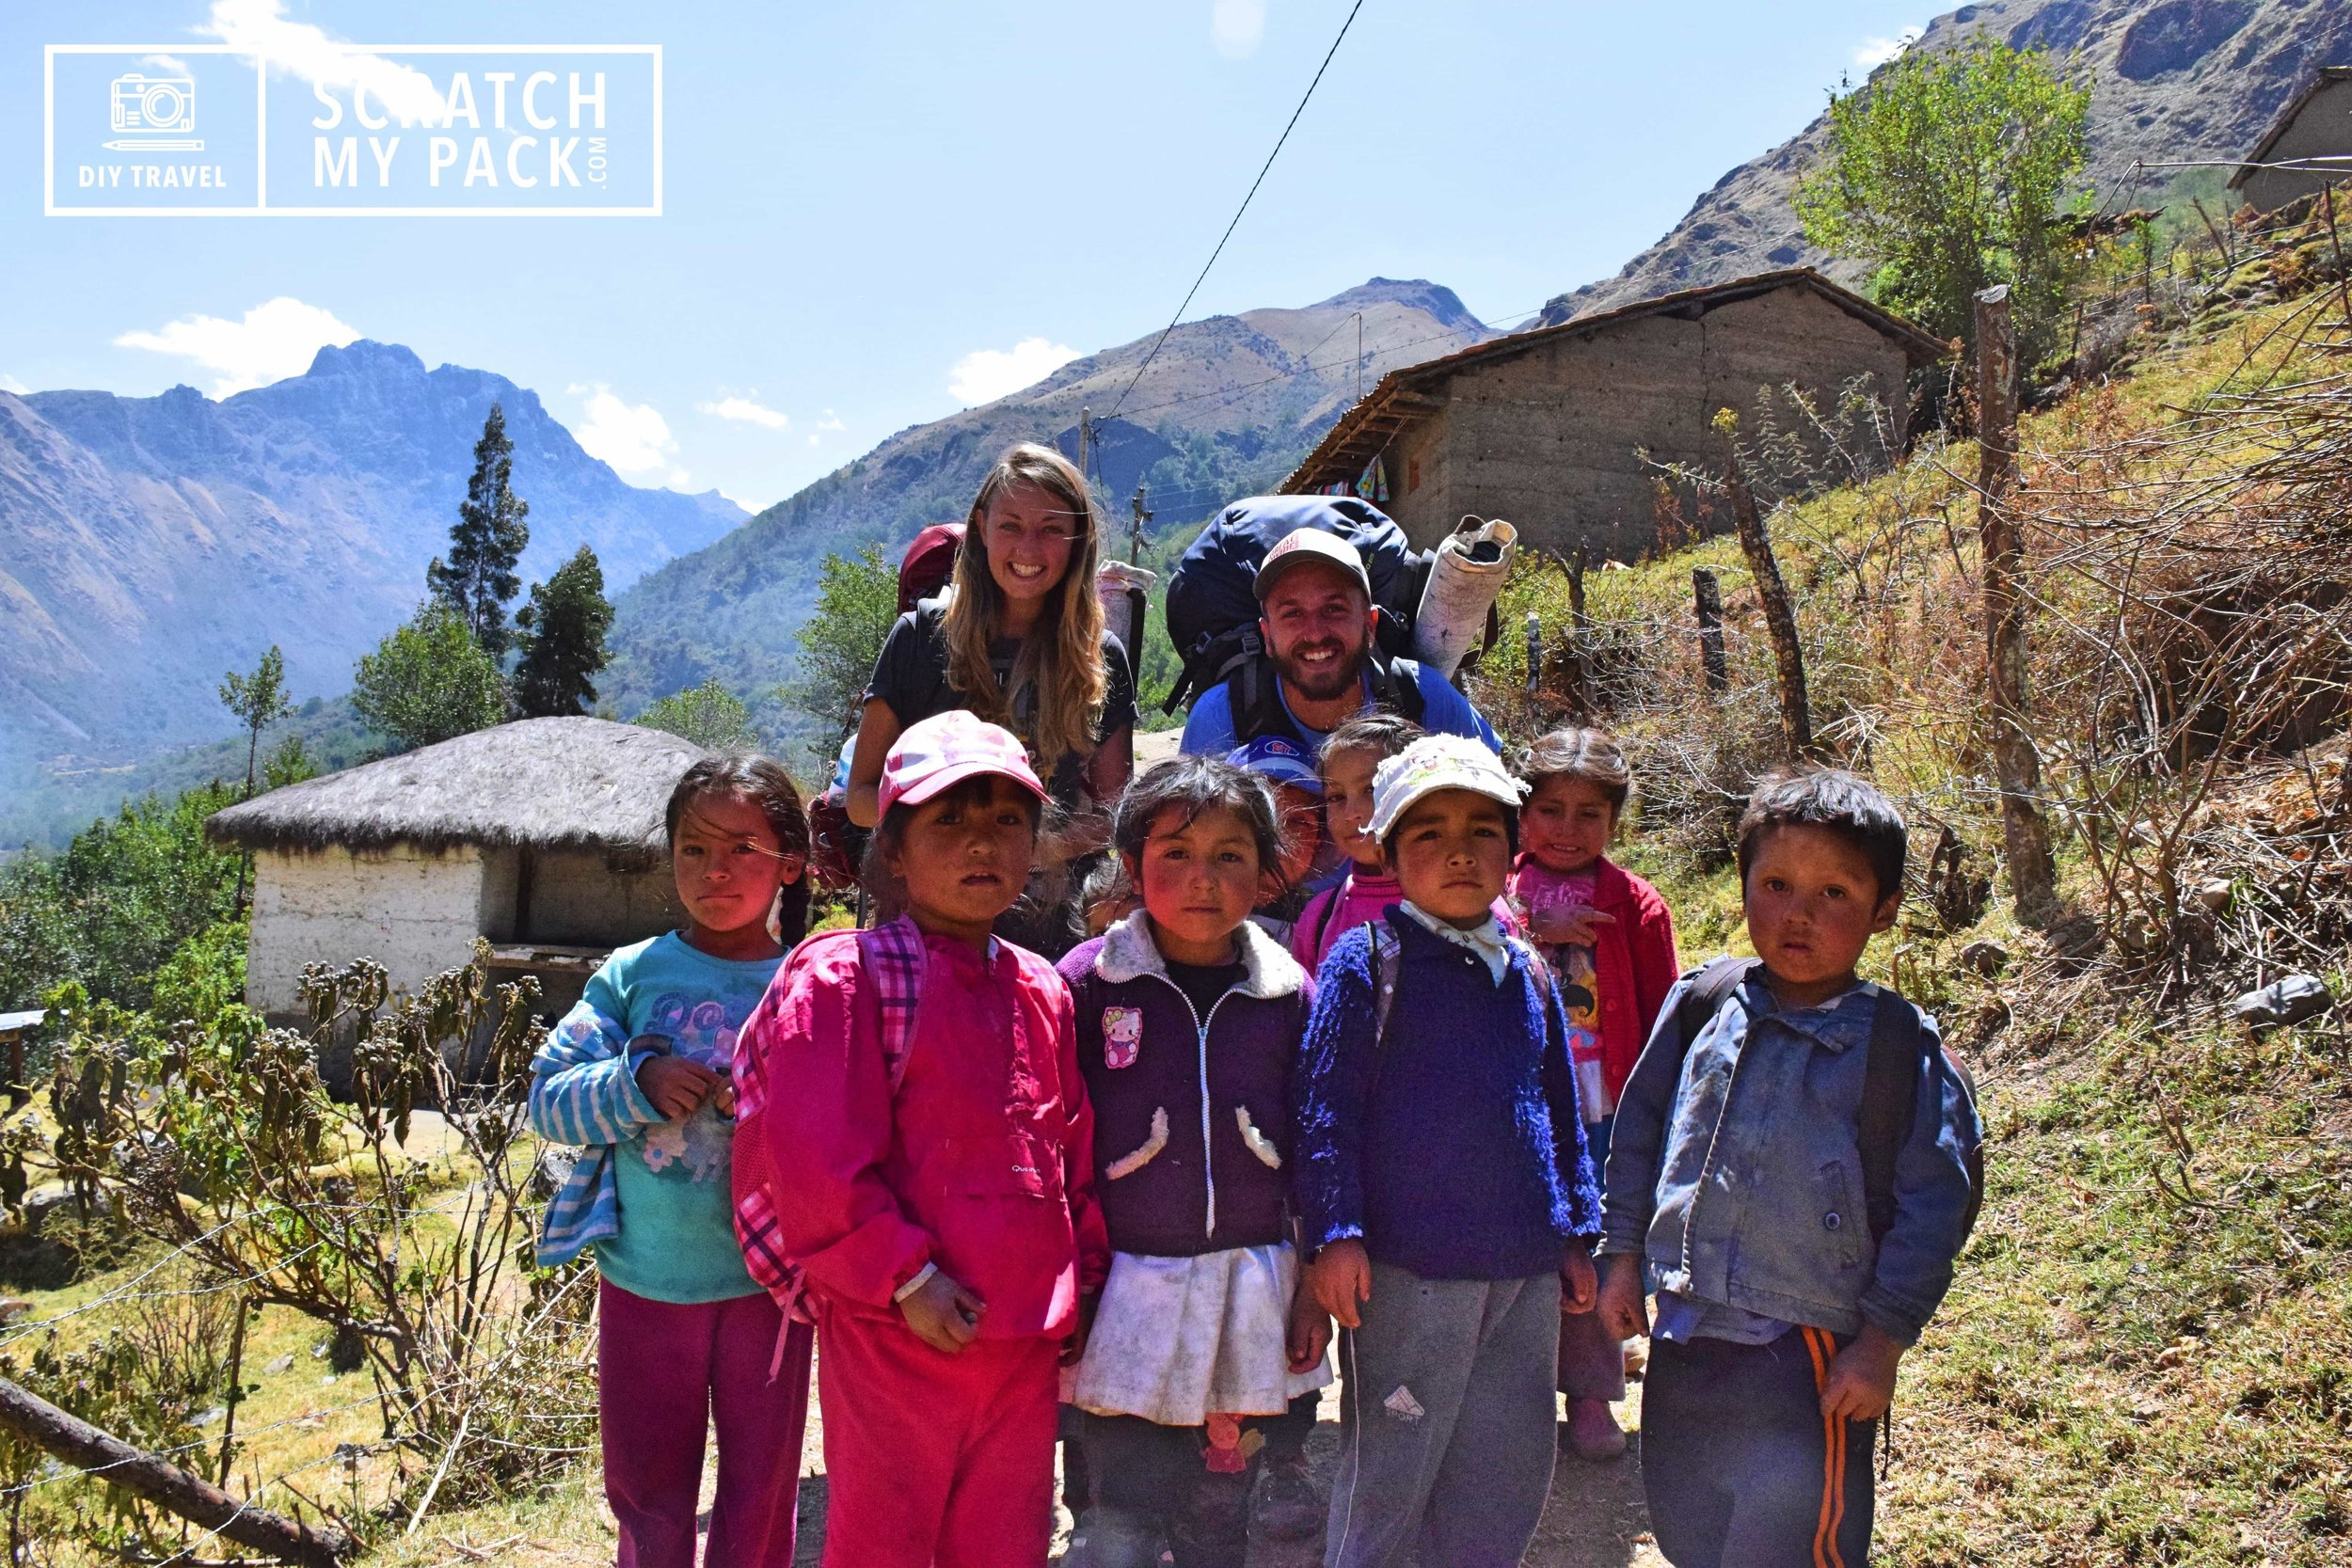 Meeting some local kids on a hike in Peru